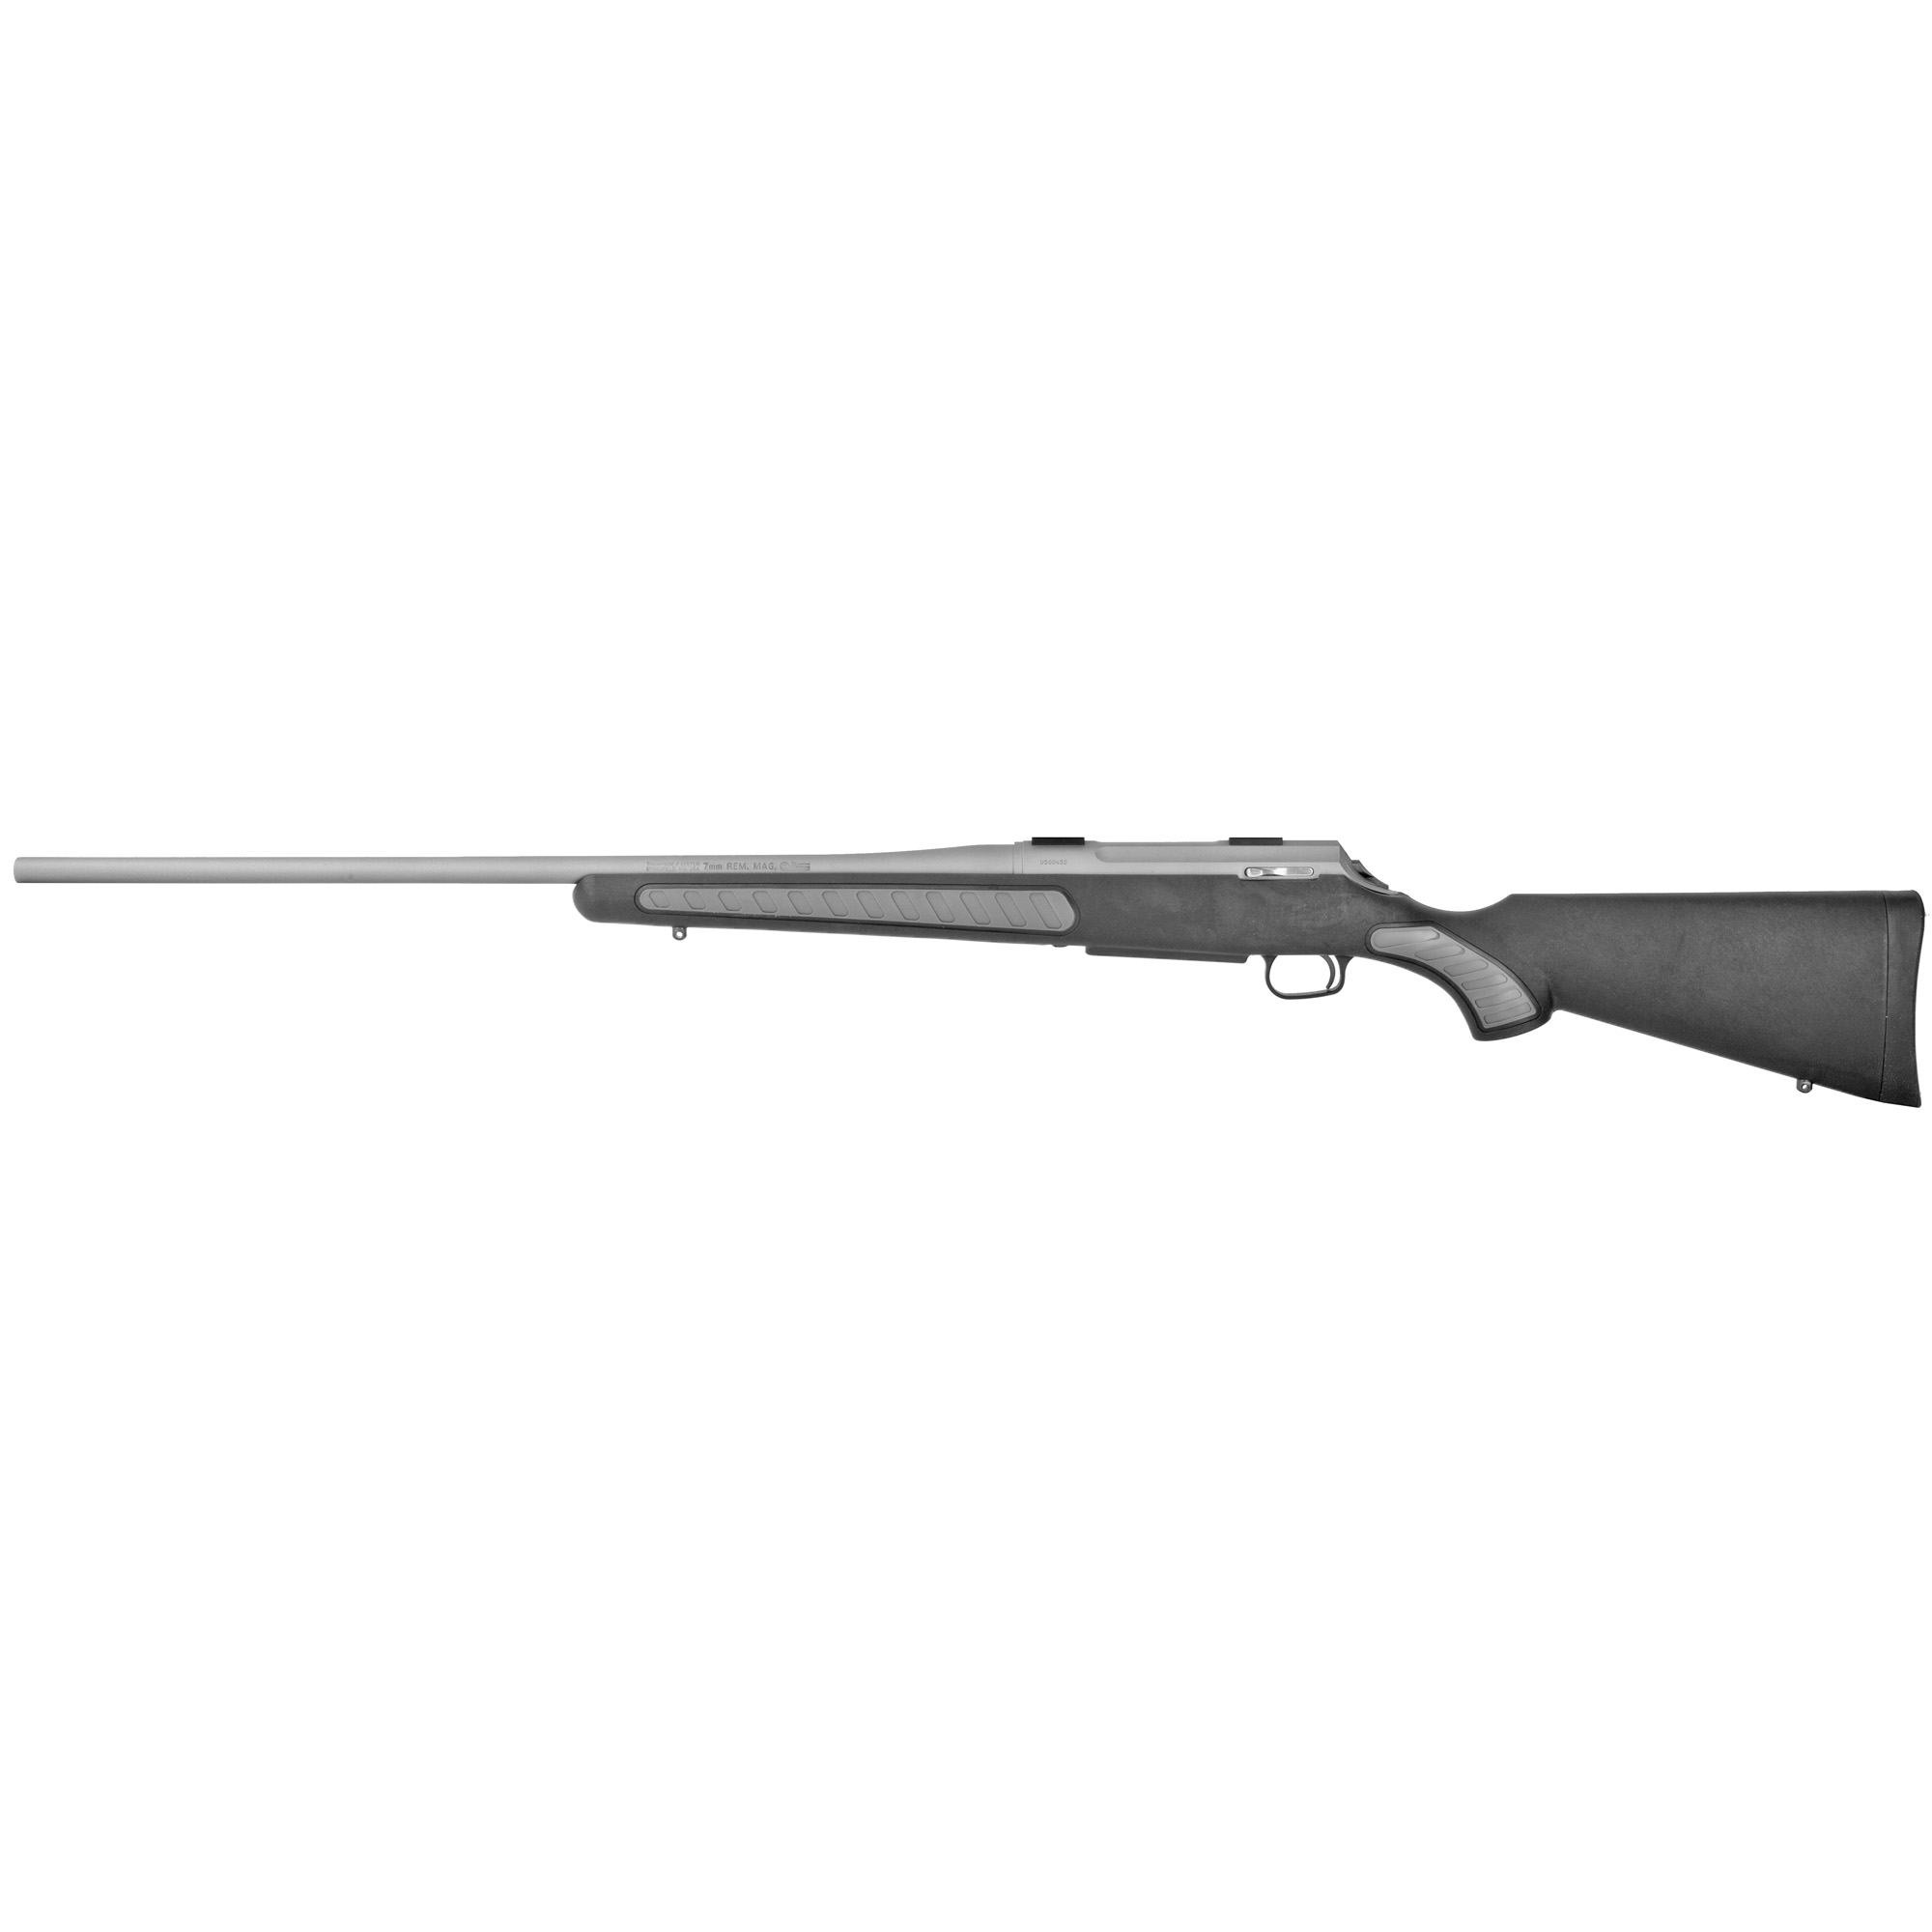 """The innovative Weather Shield exterior coating is nearly impervious to rust"""" protecting your investment wherever the hunt takes you. When you need a gun that makes the shot rain or shine"""" choose the T/C Venture Weather Shield."""